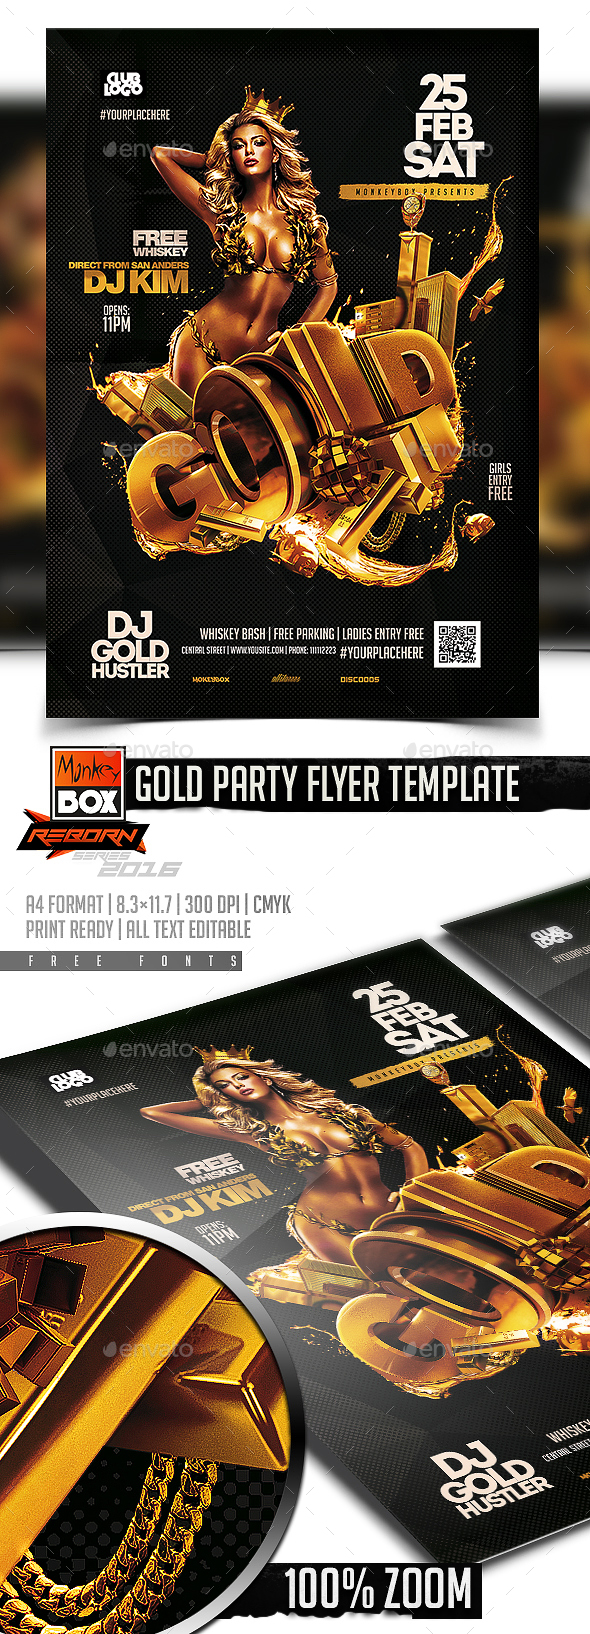 Gold Party Flyer Template - Flyers Print Templates